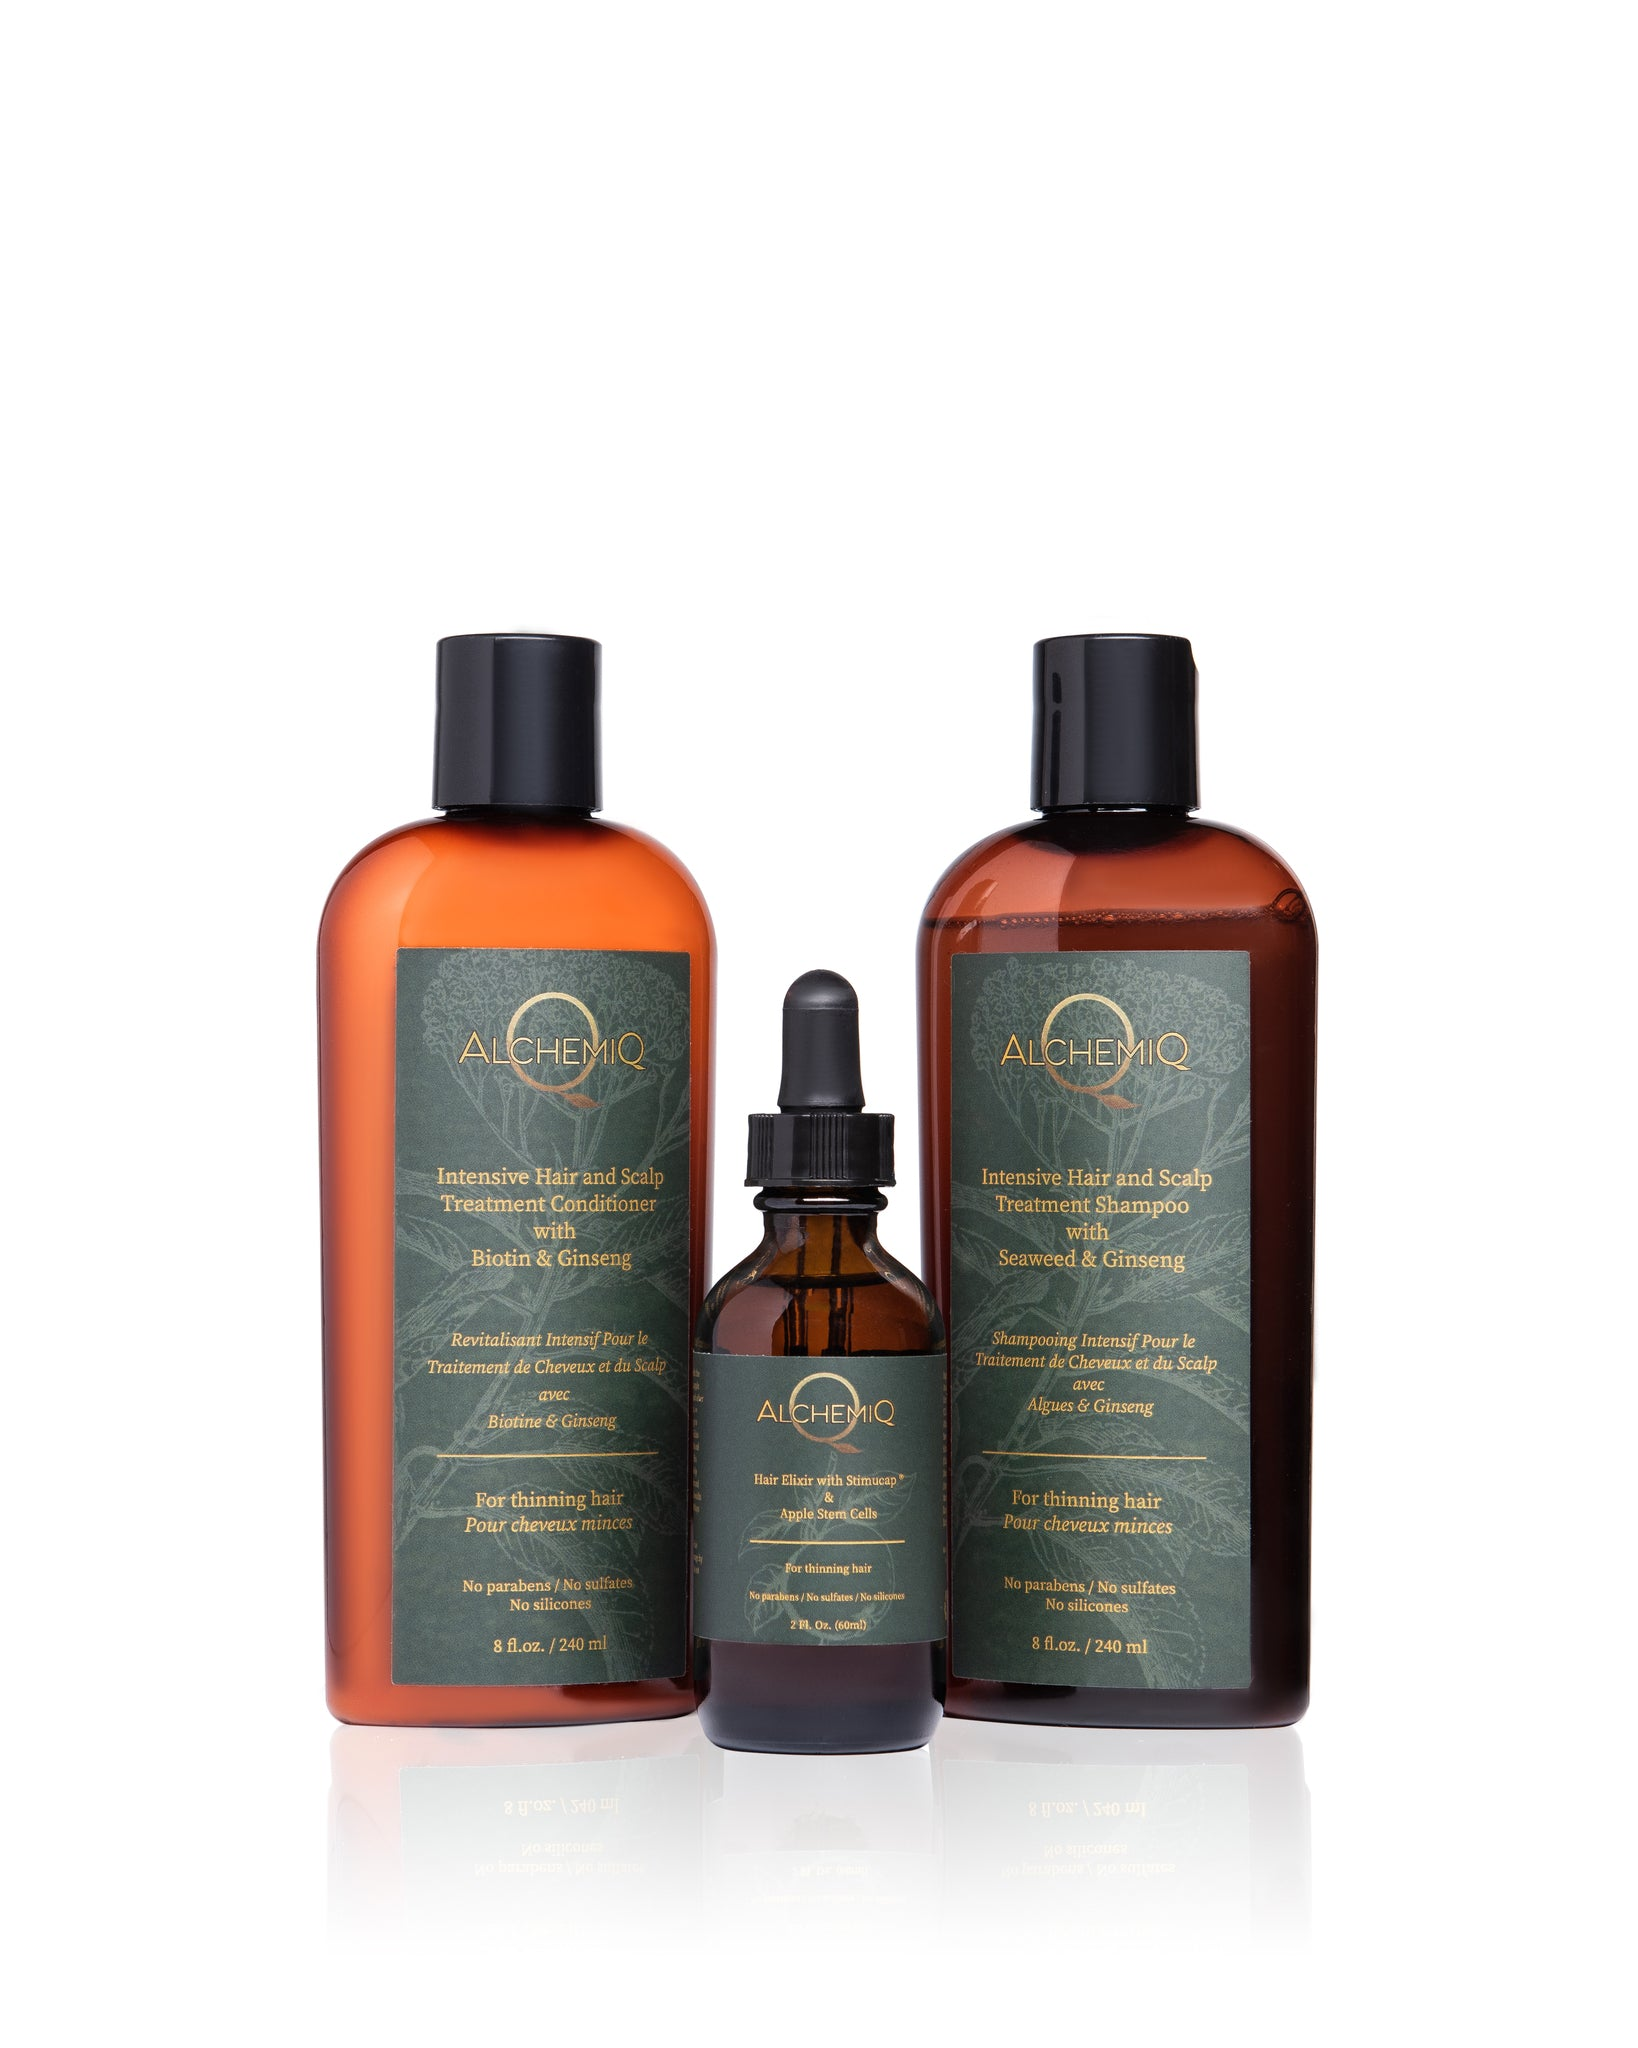 INTENSIVE HAIR & SCALP TREATMENT BUNDLE